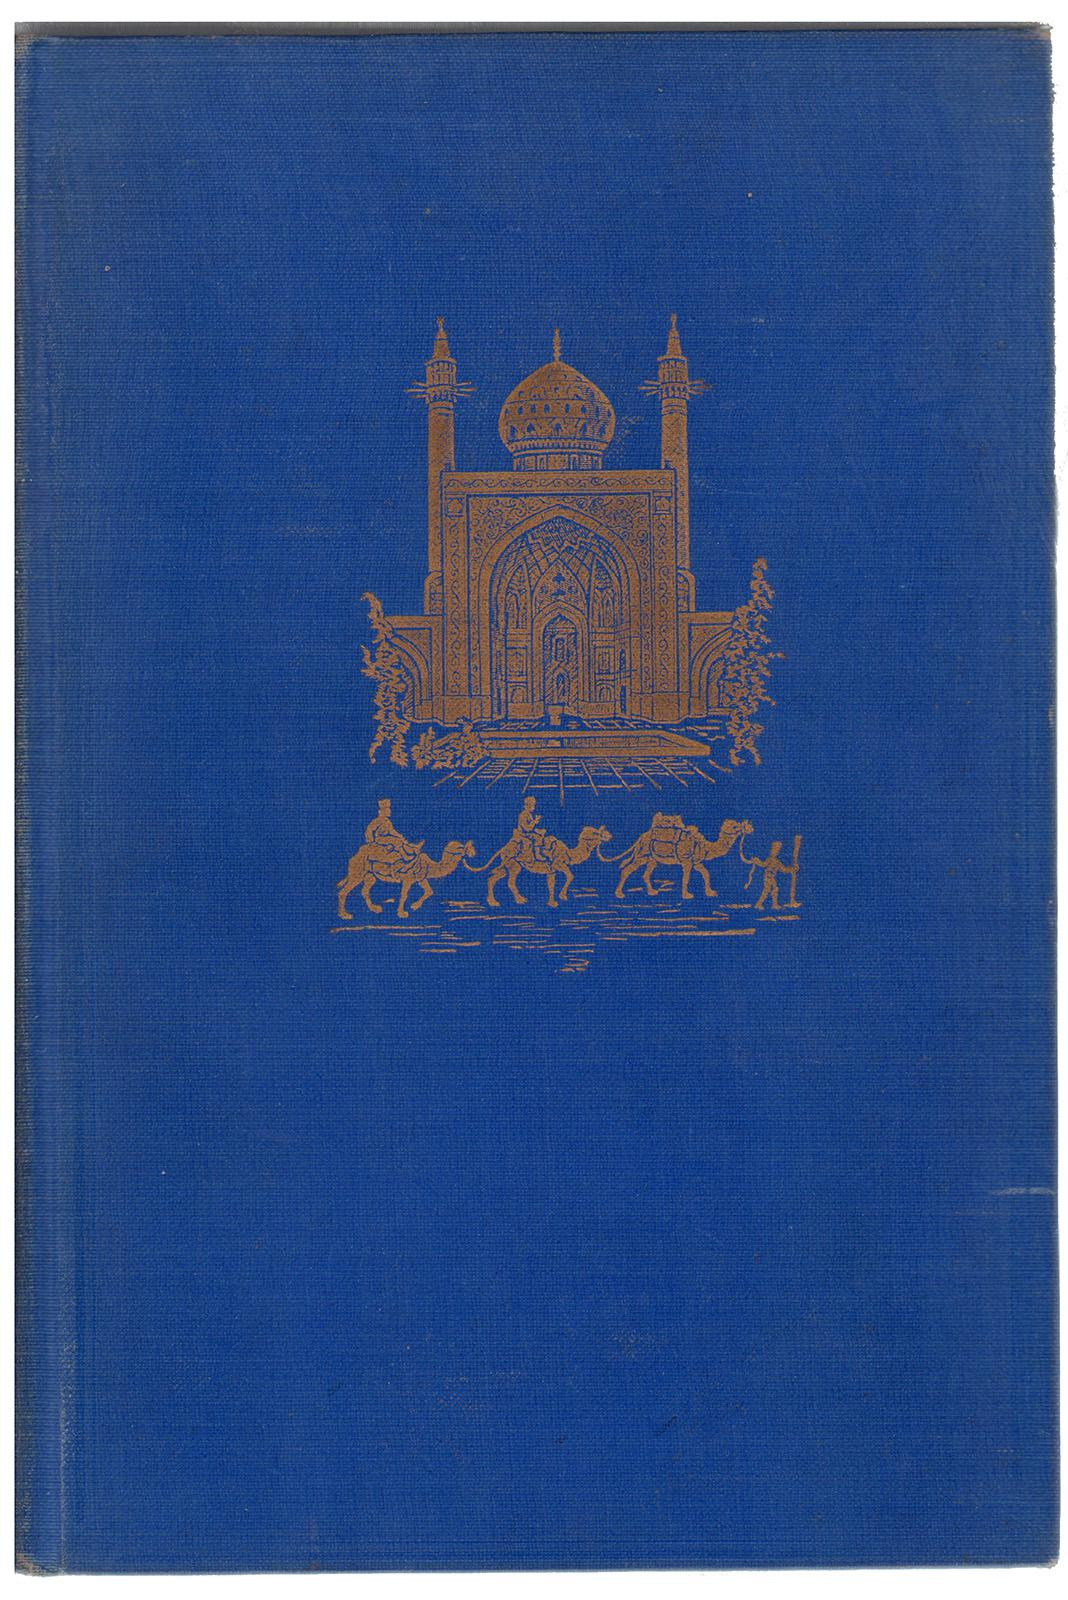 Quot Persian Days Quot By Copley Amory Jr Chairish